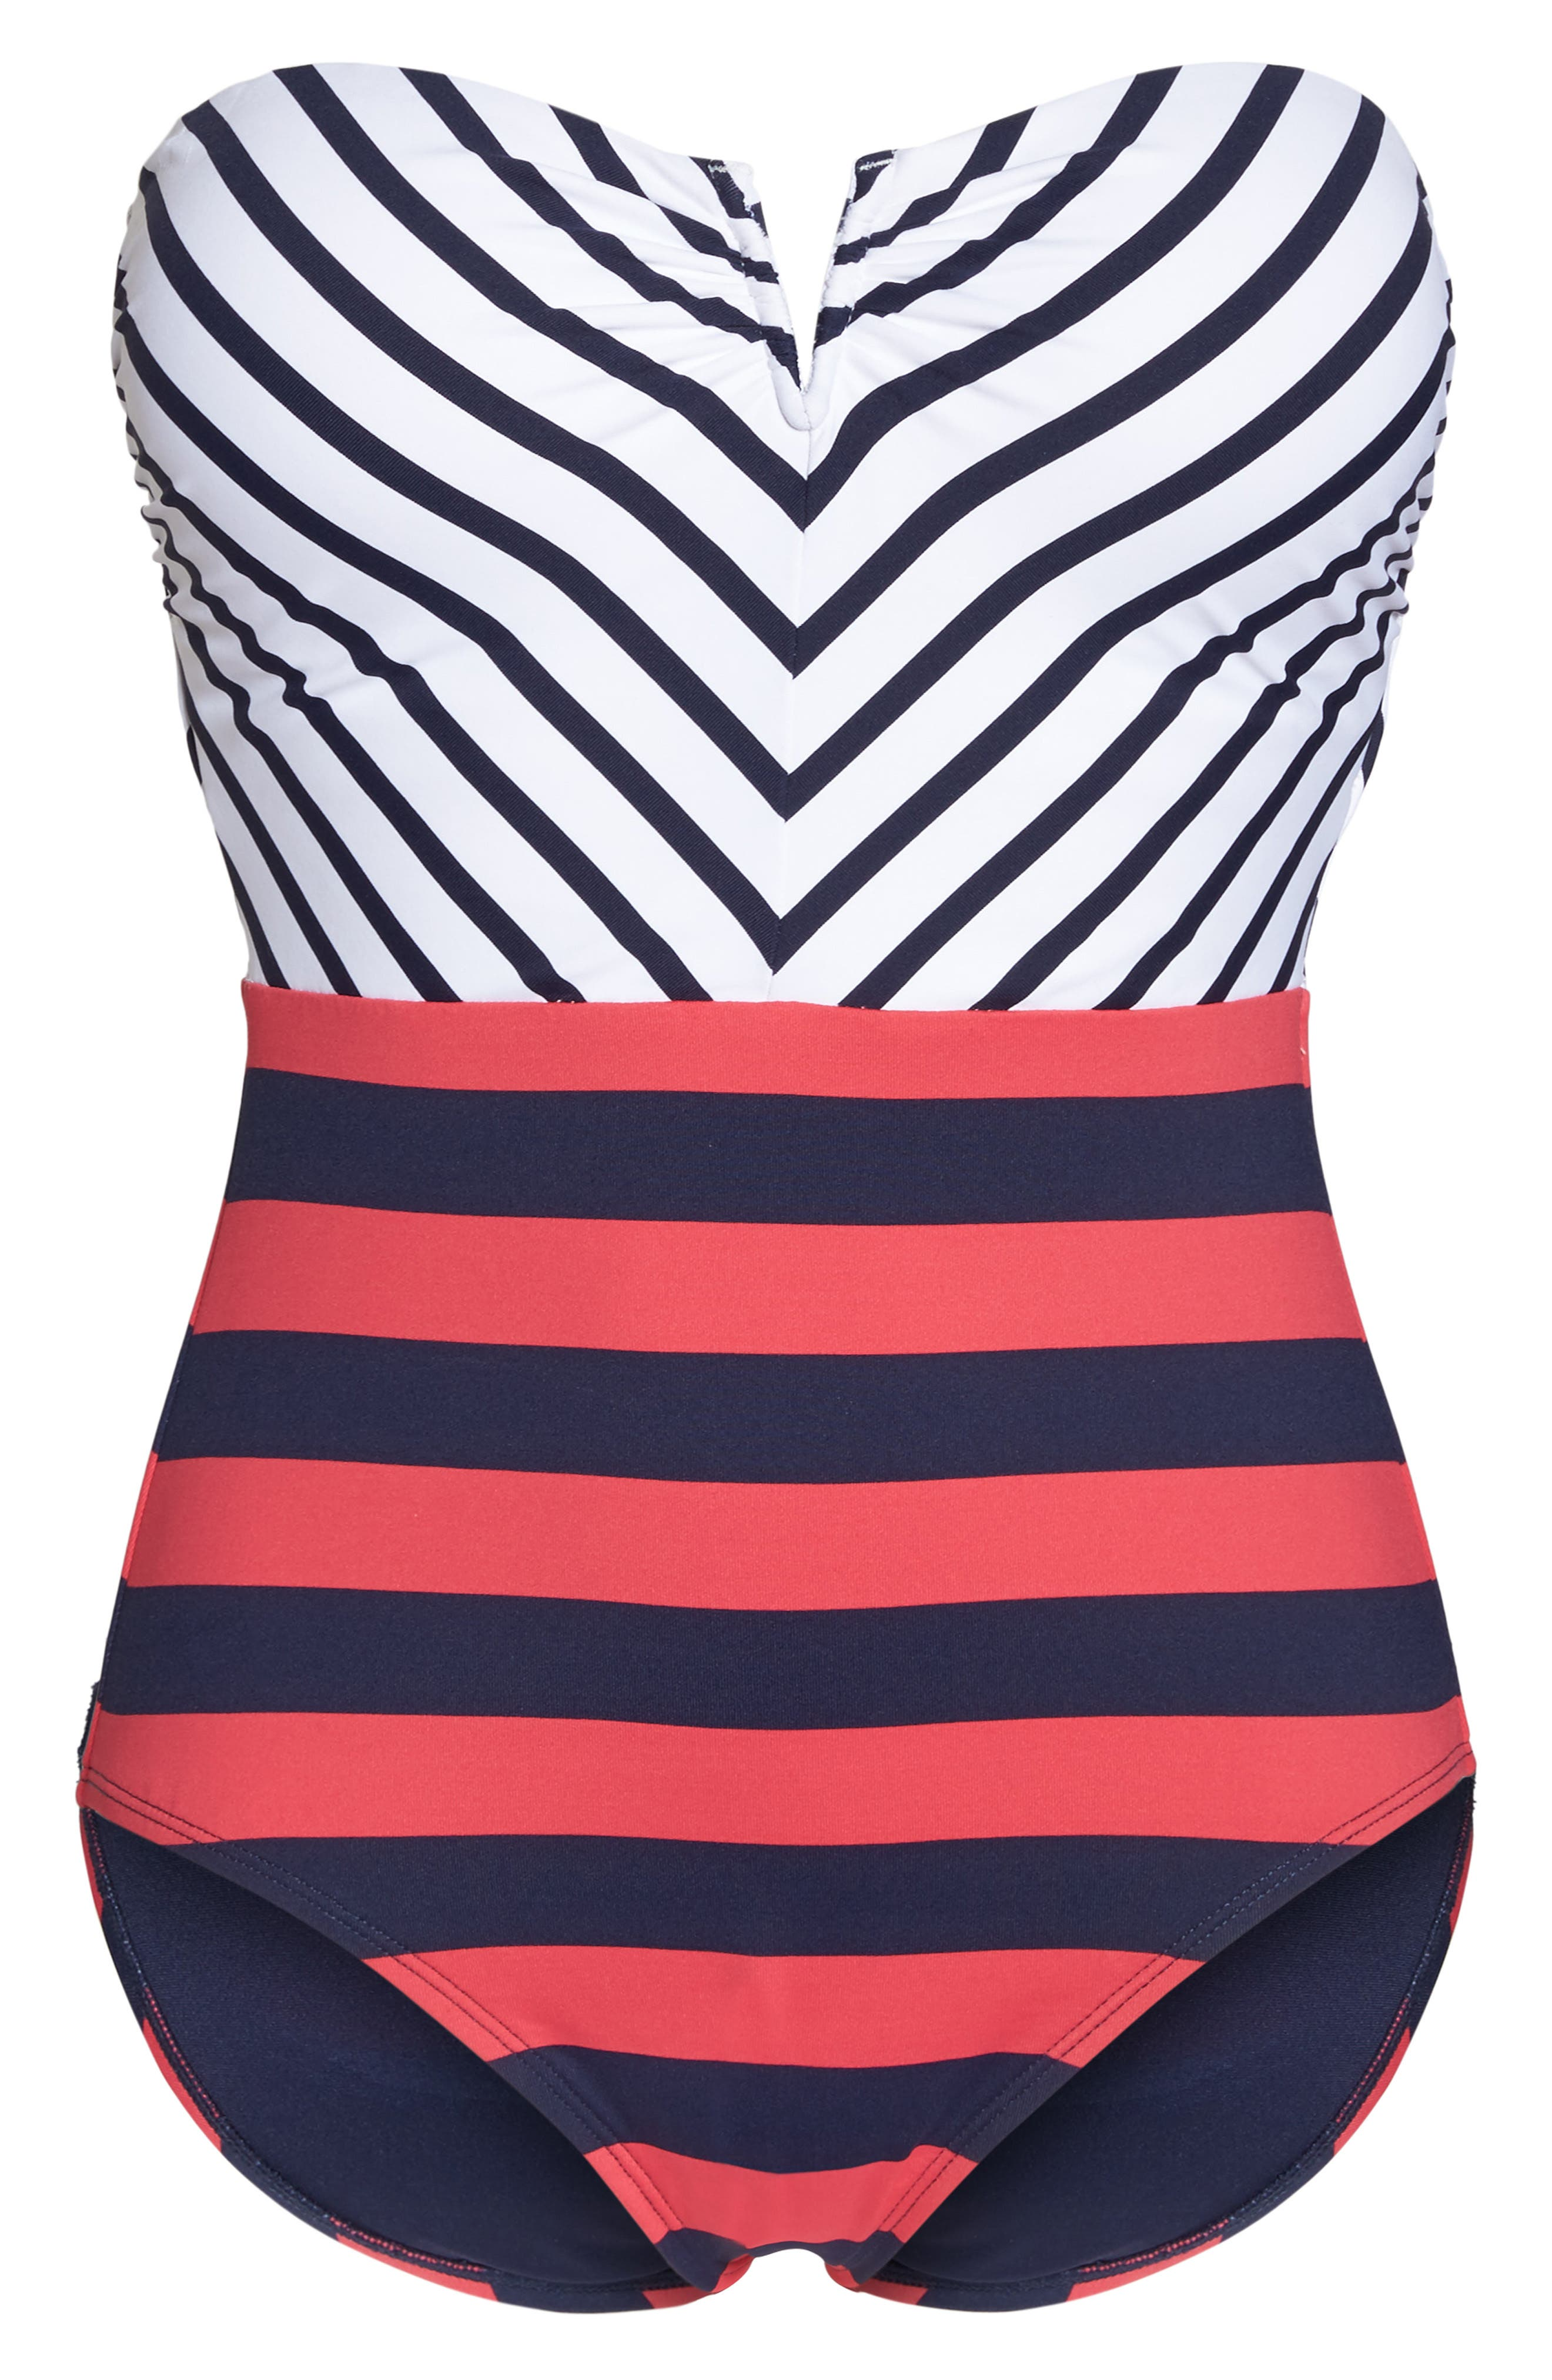 Channel Surfing Strapless One-Piece Swimsuit,                             Alternate thumbnail 6, color,                             400